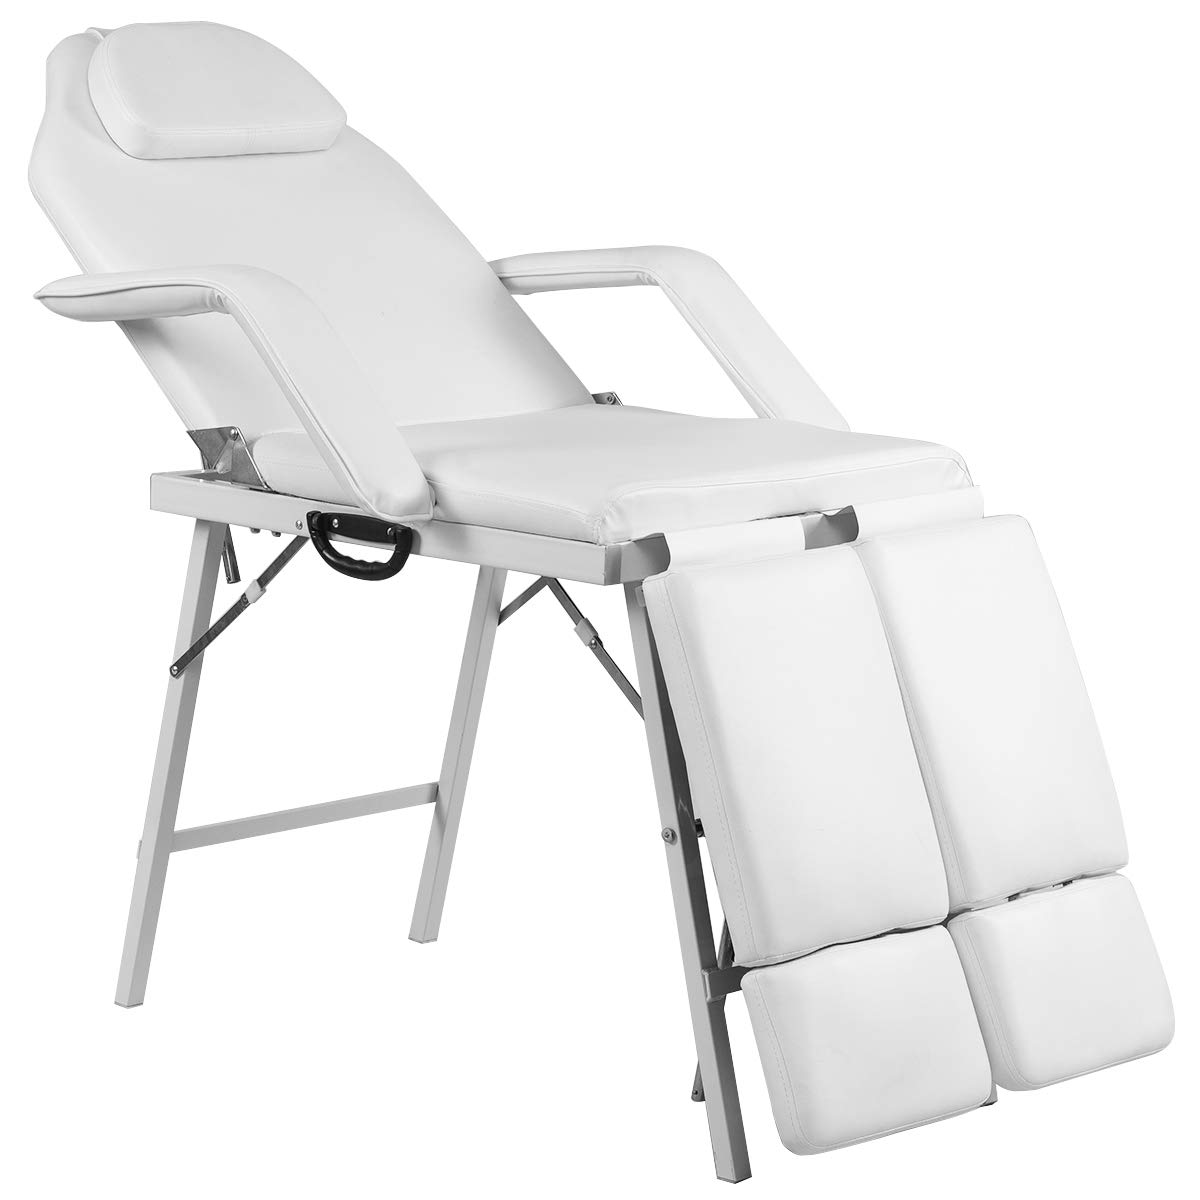 Giantex 75'' Massage Table Bed Chair Folding with Carry Bag, Portable Beauty Spa Salon Equipment Barber Facial Tattoo Chairs